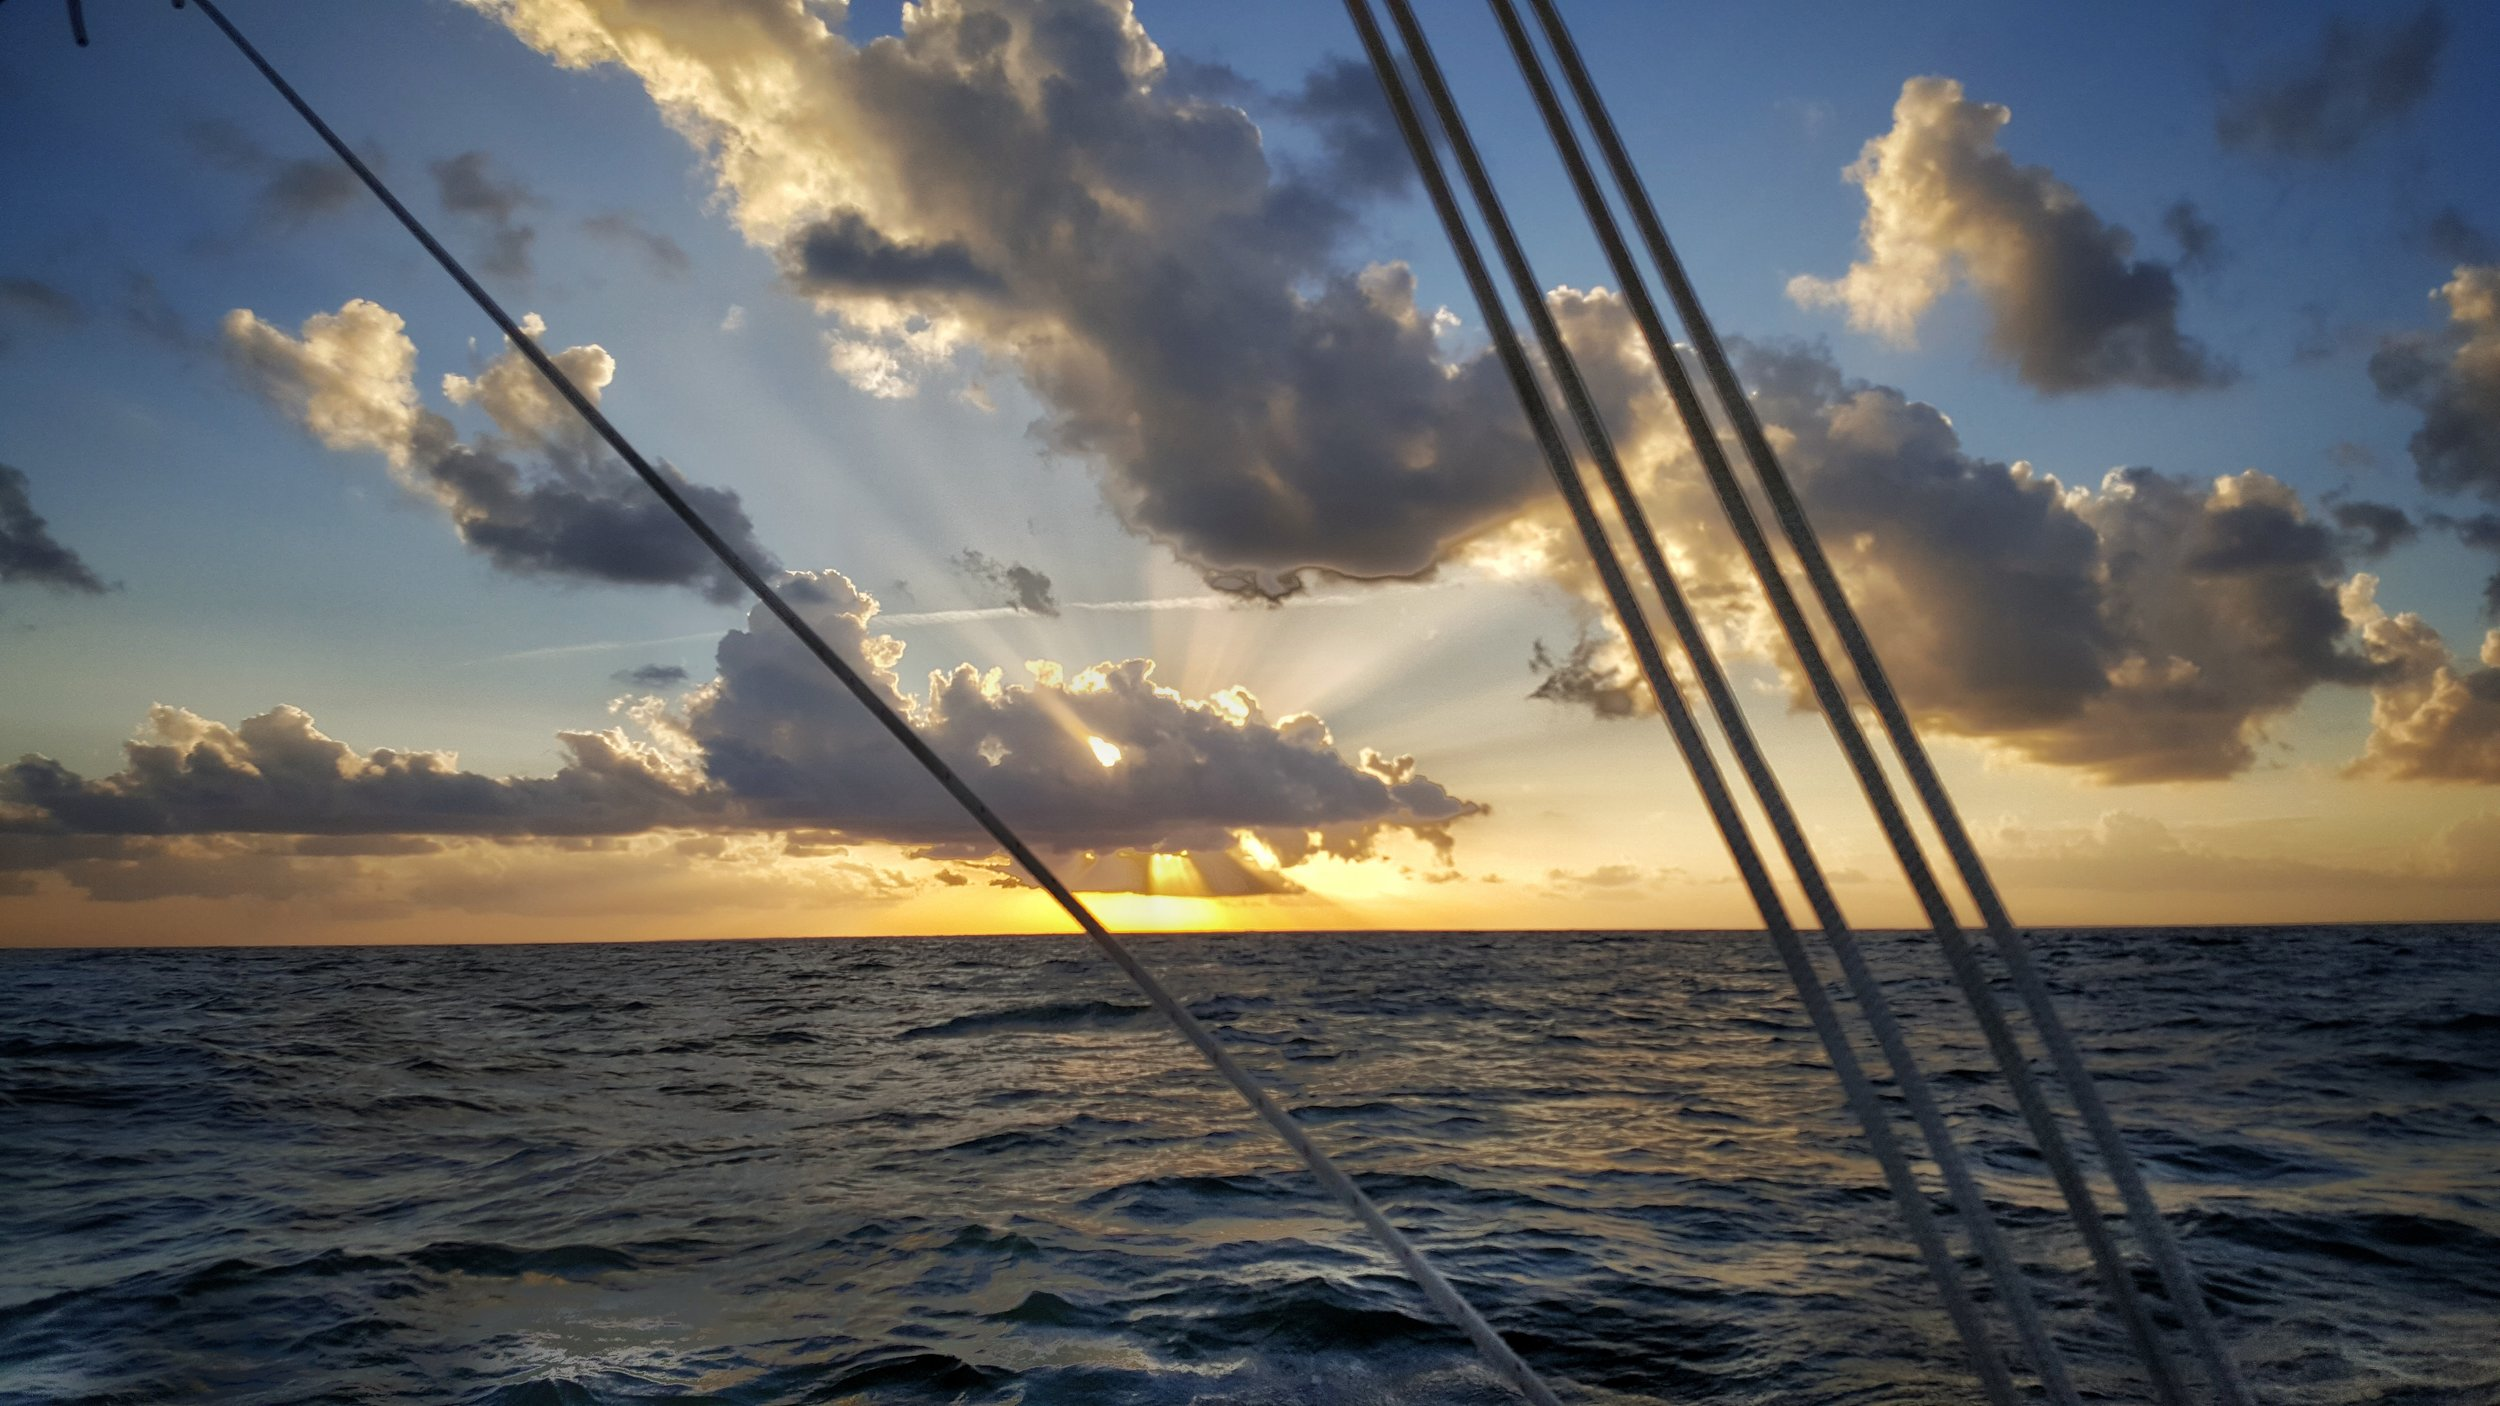 Sunset at sea, just after 'throwing' my back out at the mast